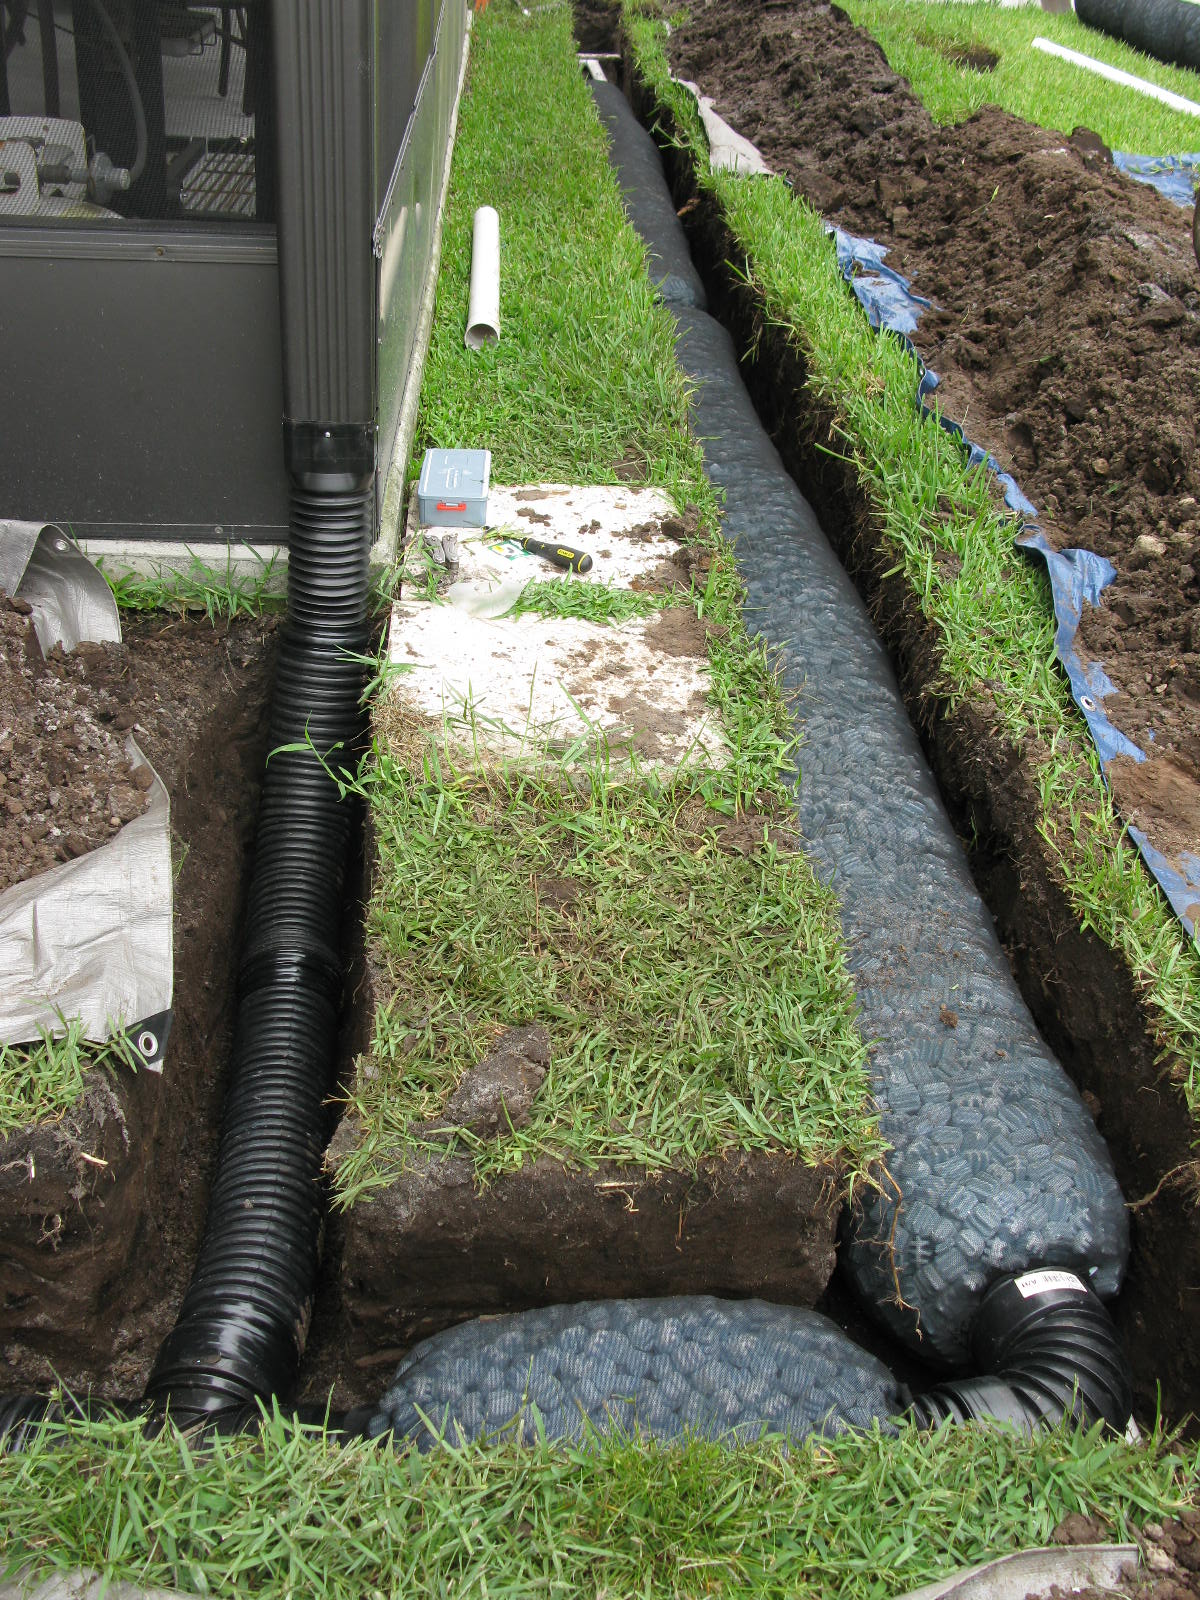 How to install a downspout in a gutter - Downspouts Connected To French Drain